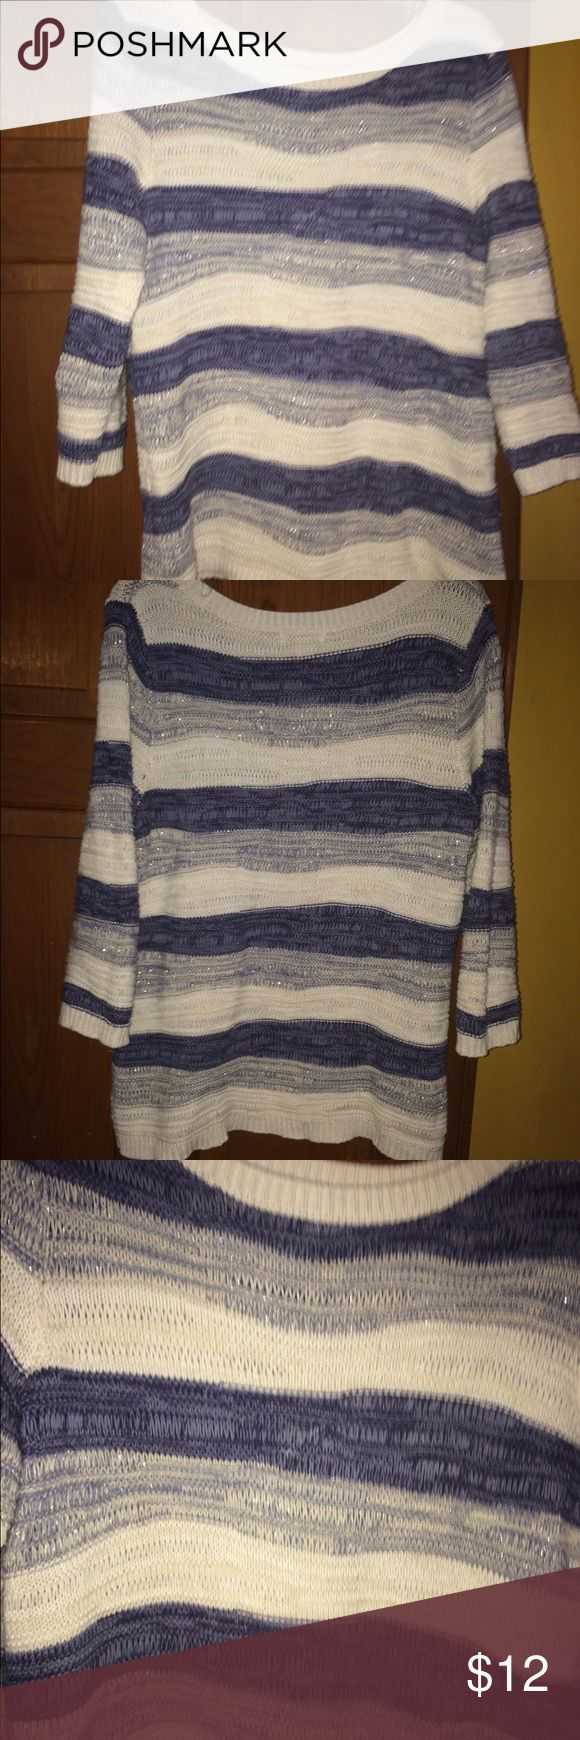 SALE BOGO 50% OFF, Large Beautiful Sweater, SALE BOGO 50% OFF, Large Beautiful Sweater, looks great w/Jeans, Ready for FALL. Kim Rogers Sweaters